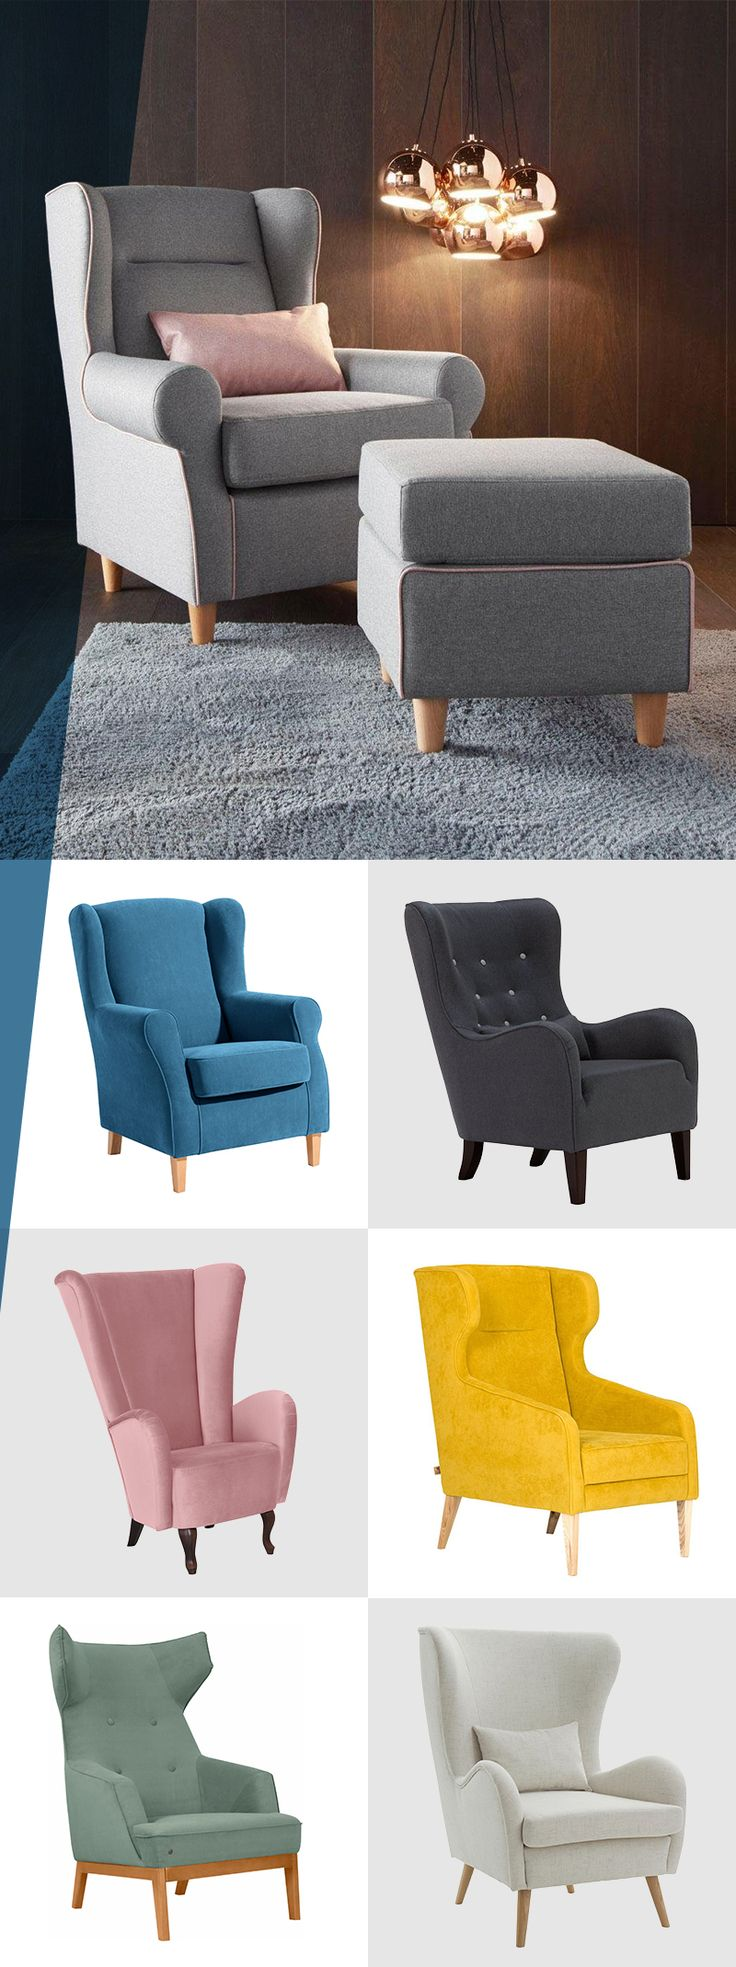 71 best Sofa images on Pinterest | Couches, Sofas and Apartments